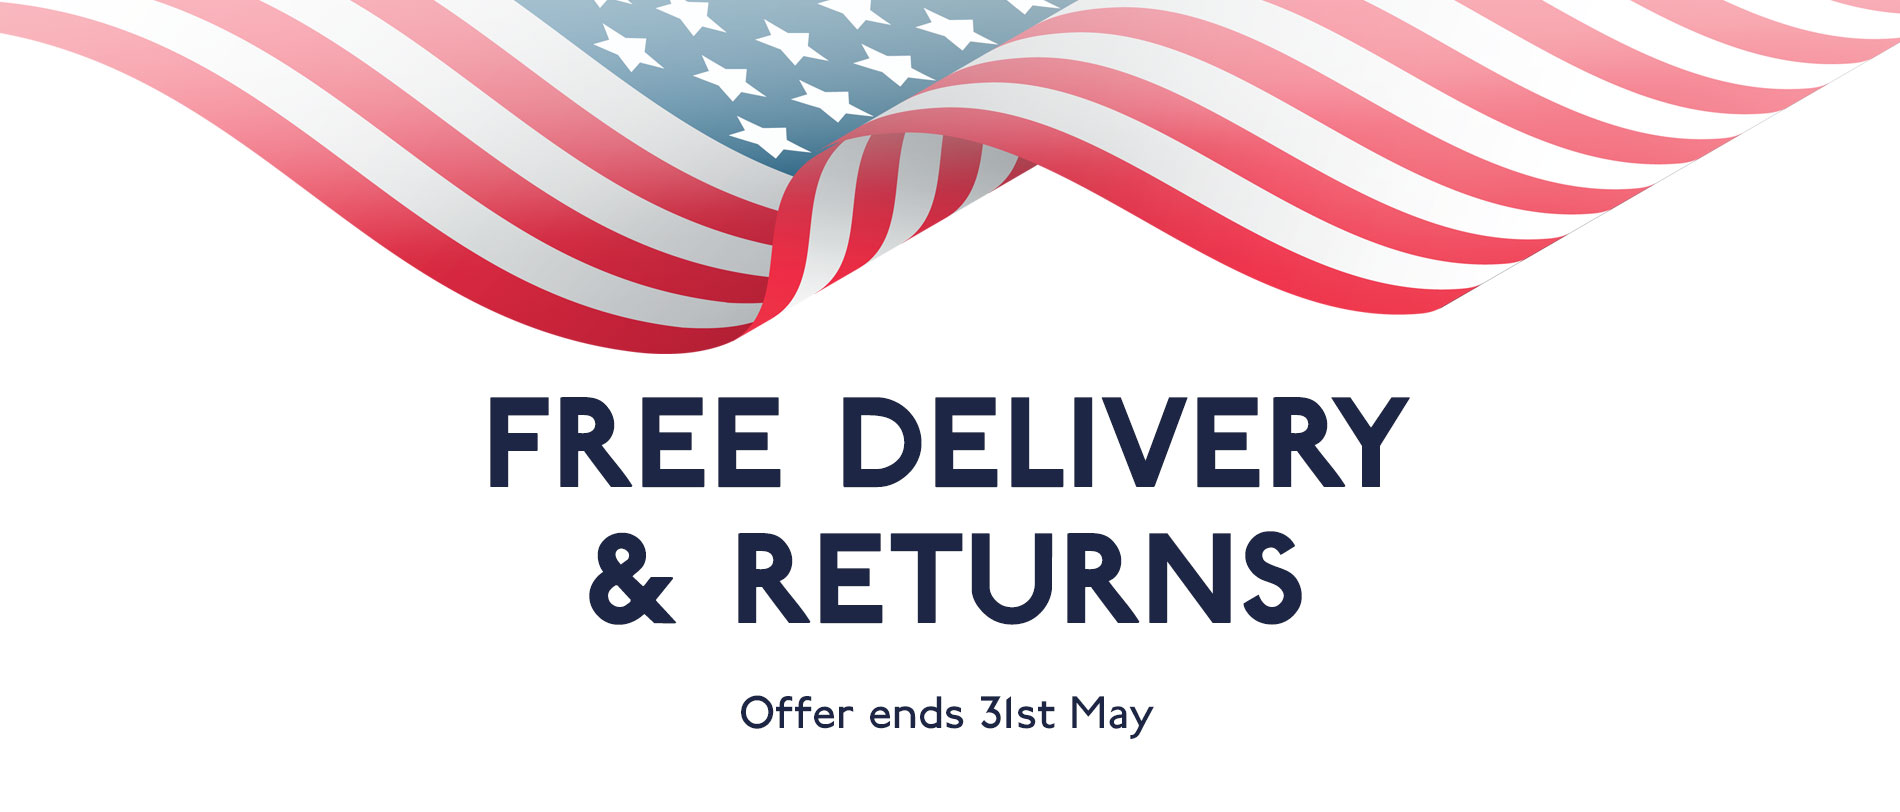 Free delivery and returns to the USA